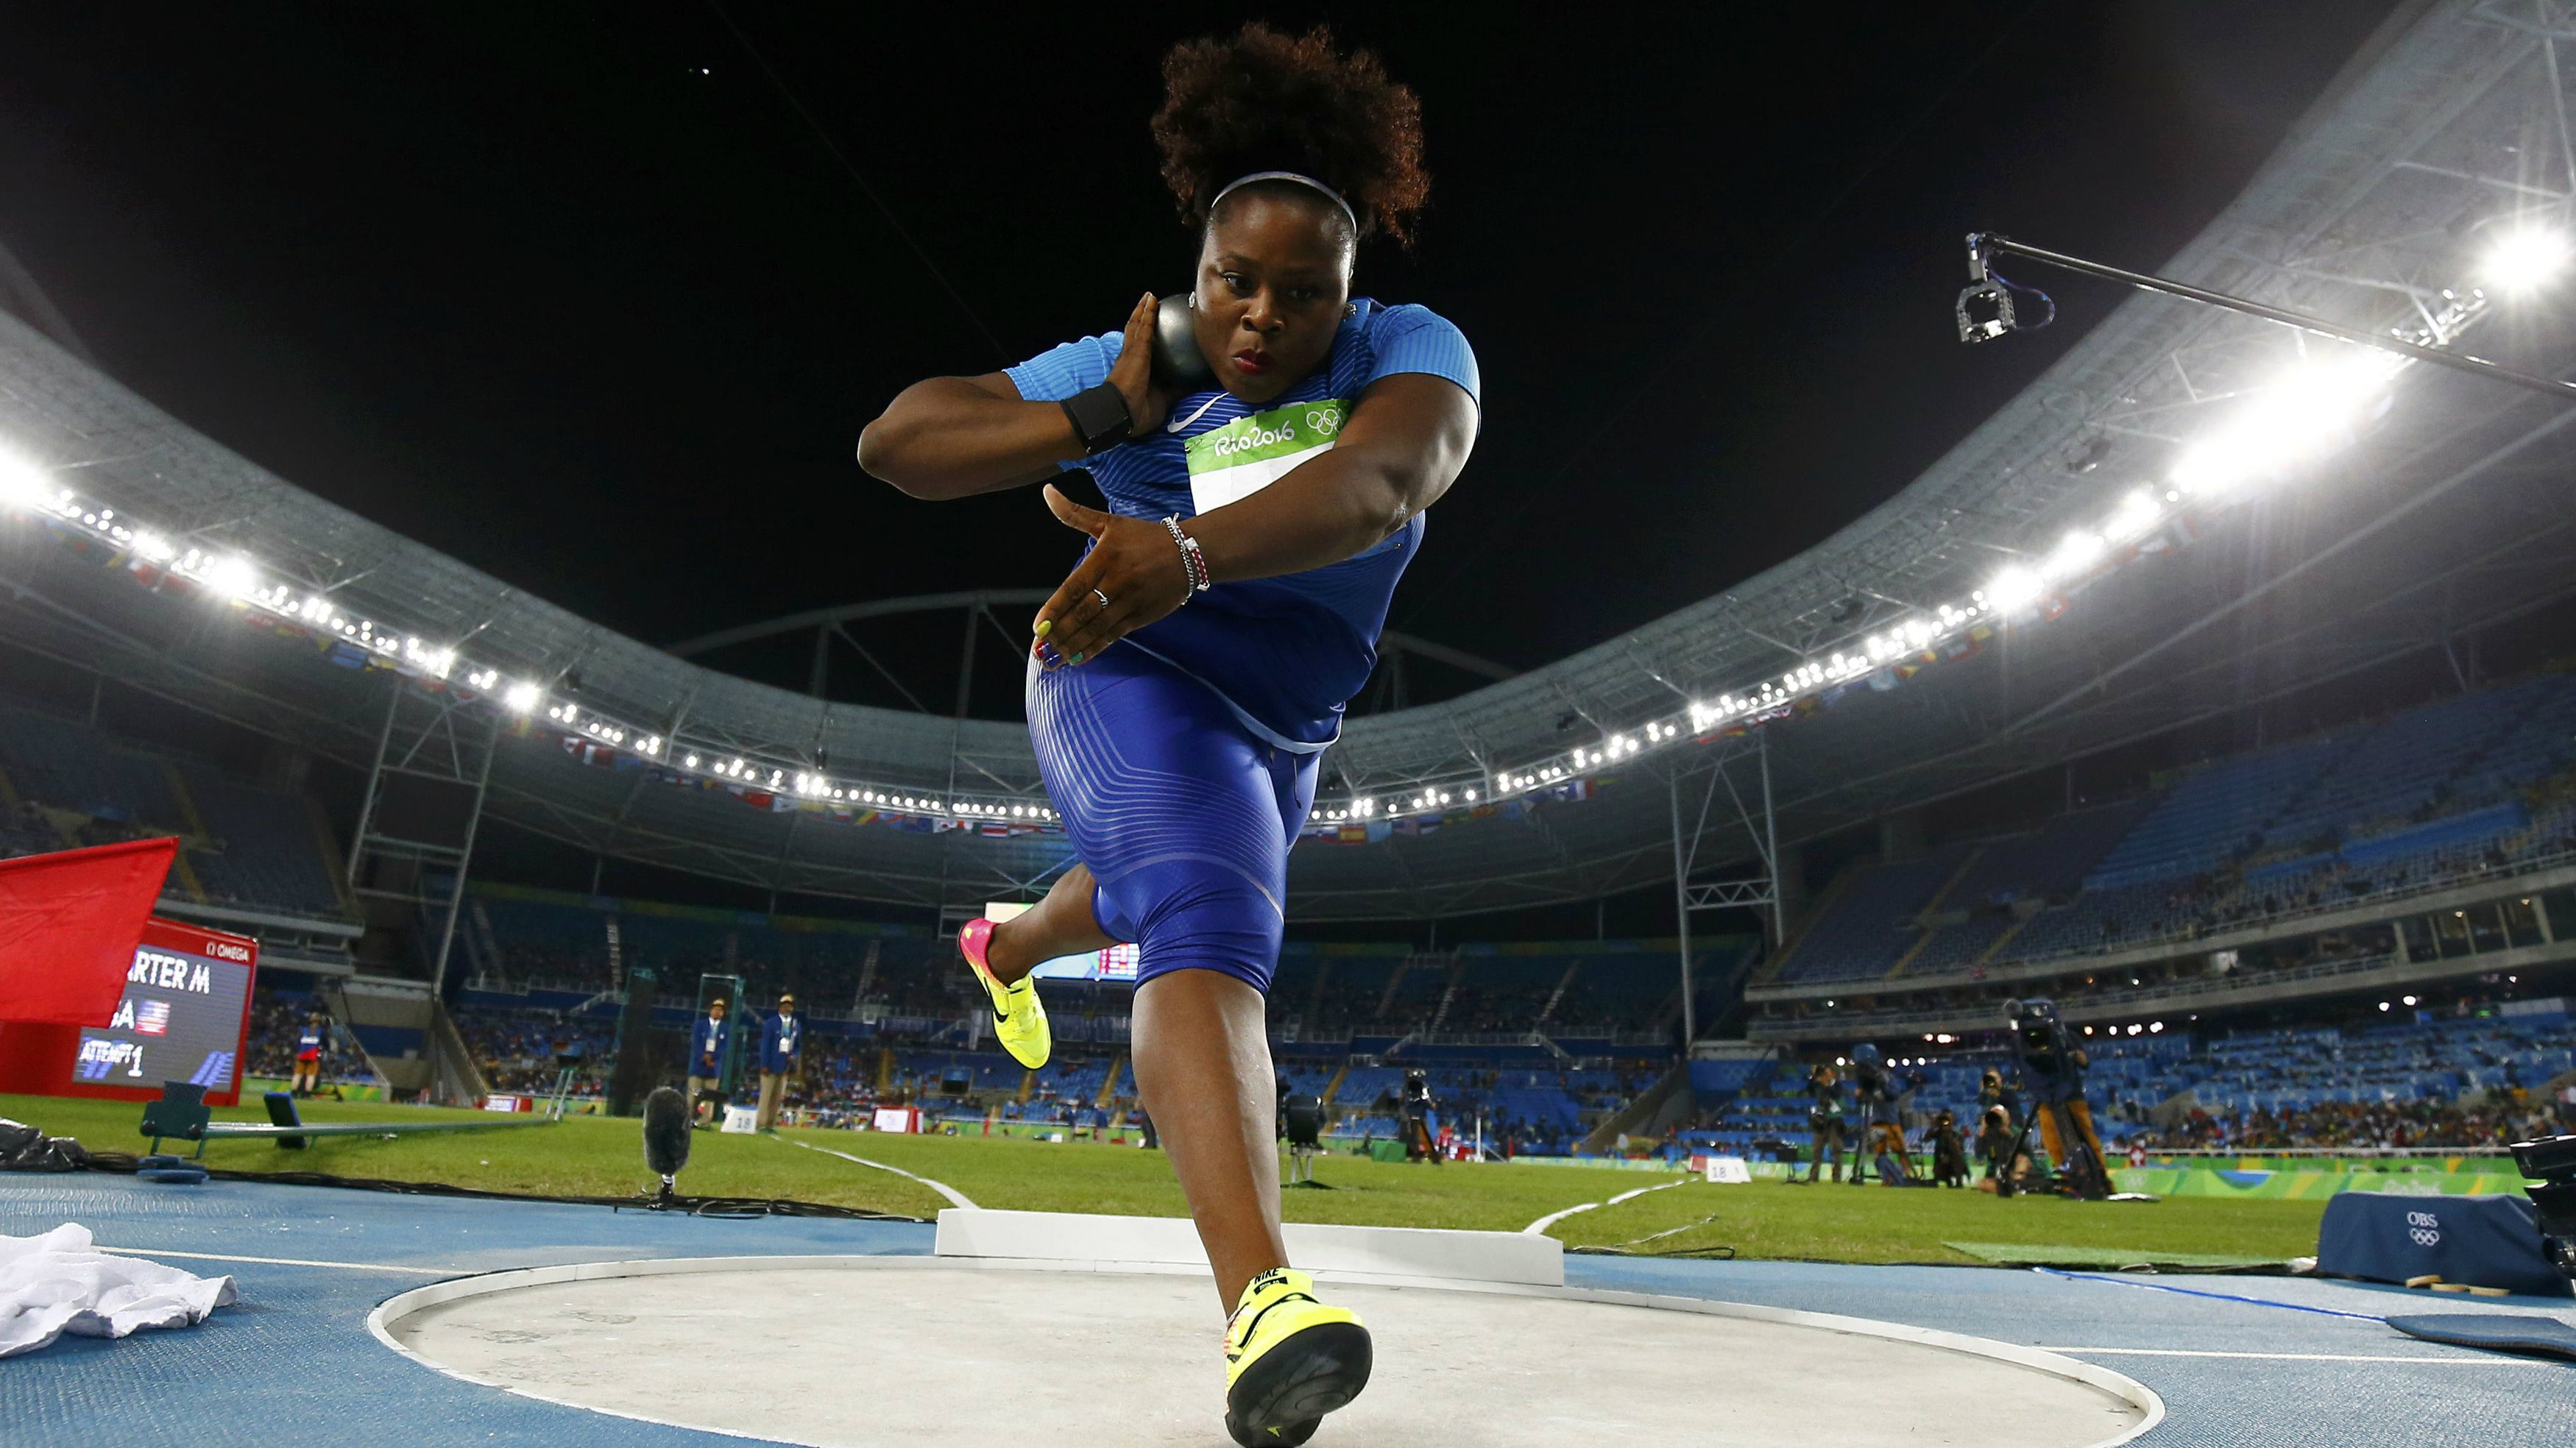 Michelle-Carter-shot-put-Olympic-gold-medalist-